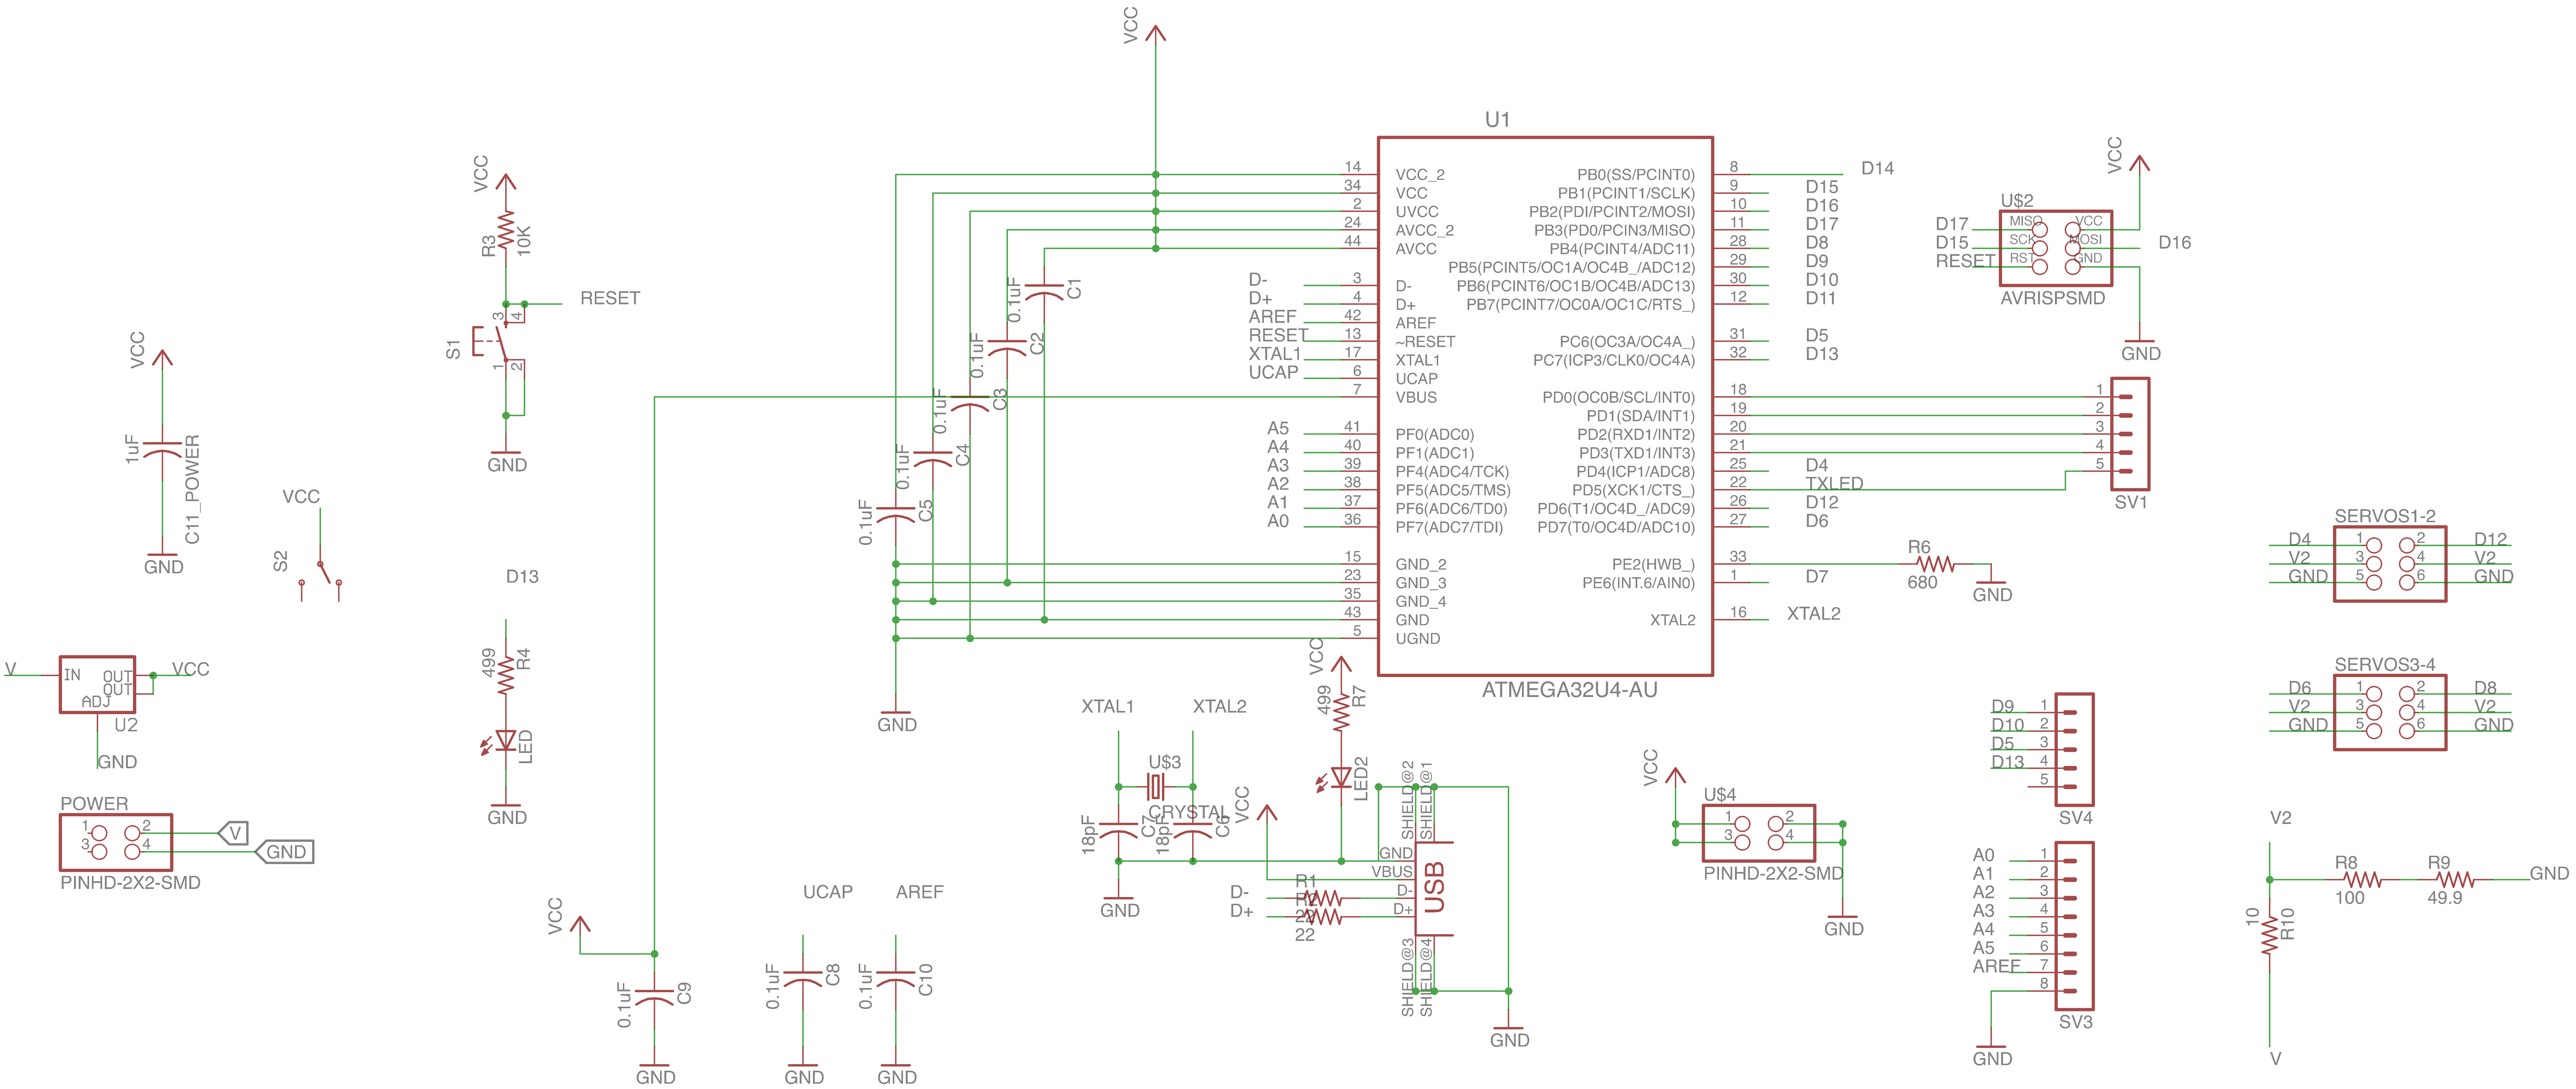 10th Week Schematic In Addition Schematics Eagle Files On File And The Board